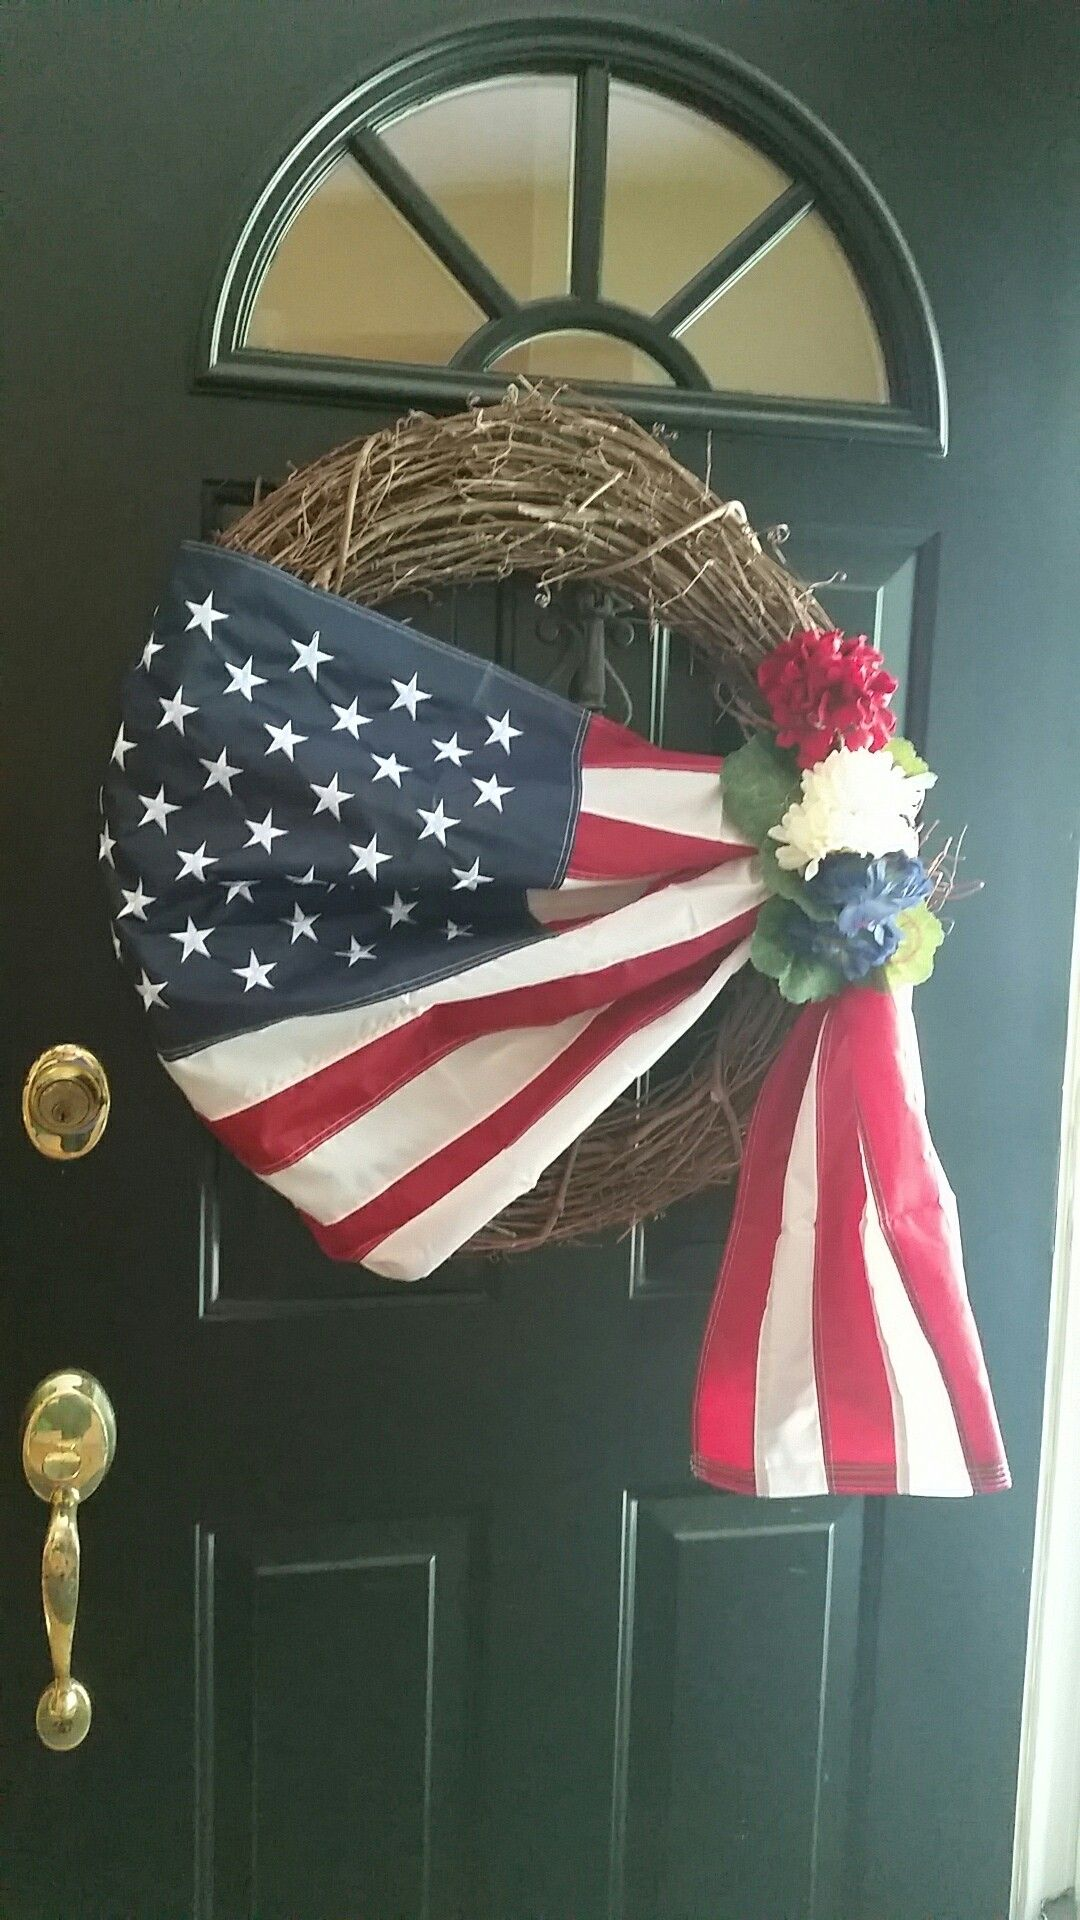 Pinterest inspired 4th of July wreath